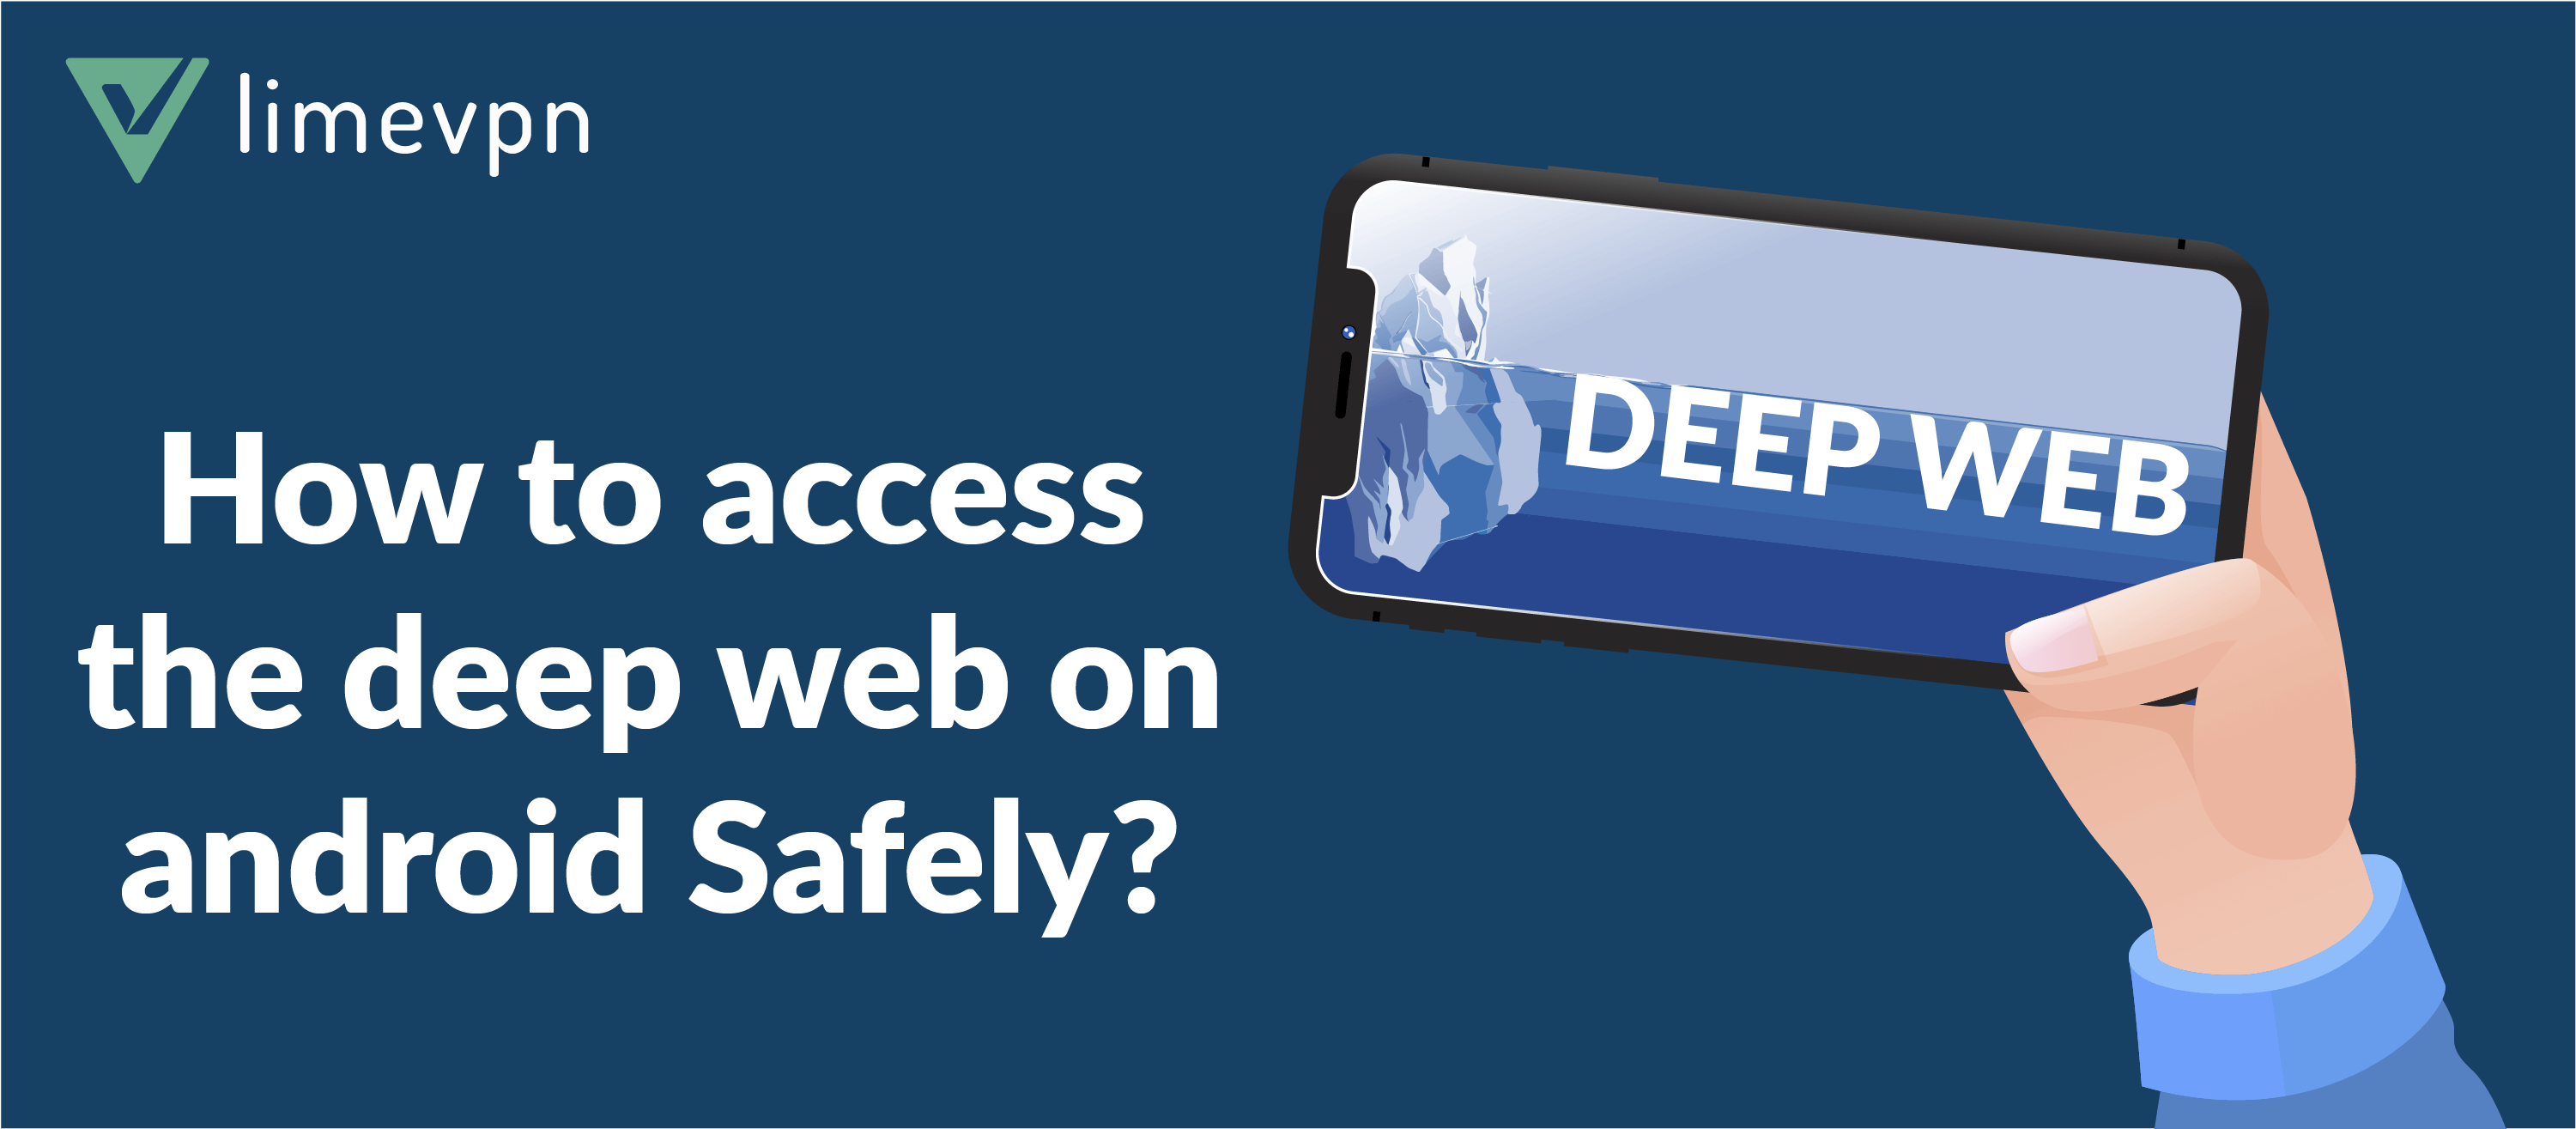 deep web on android